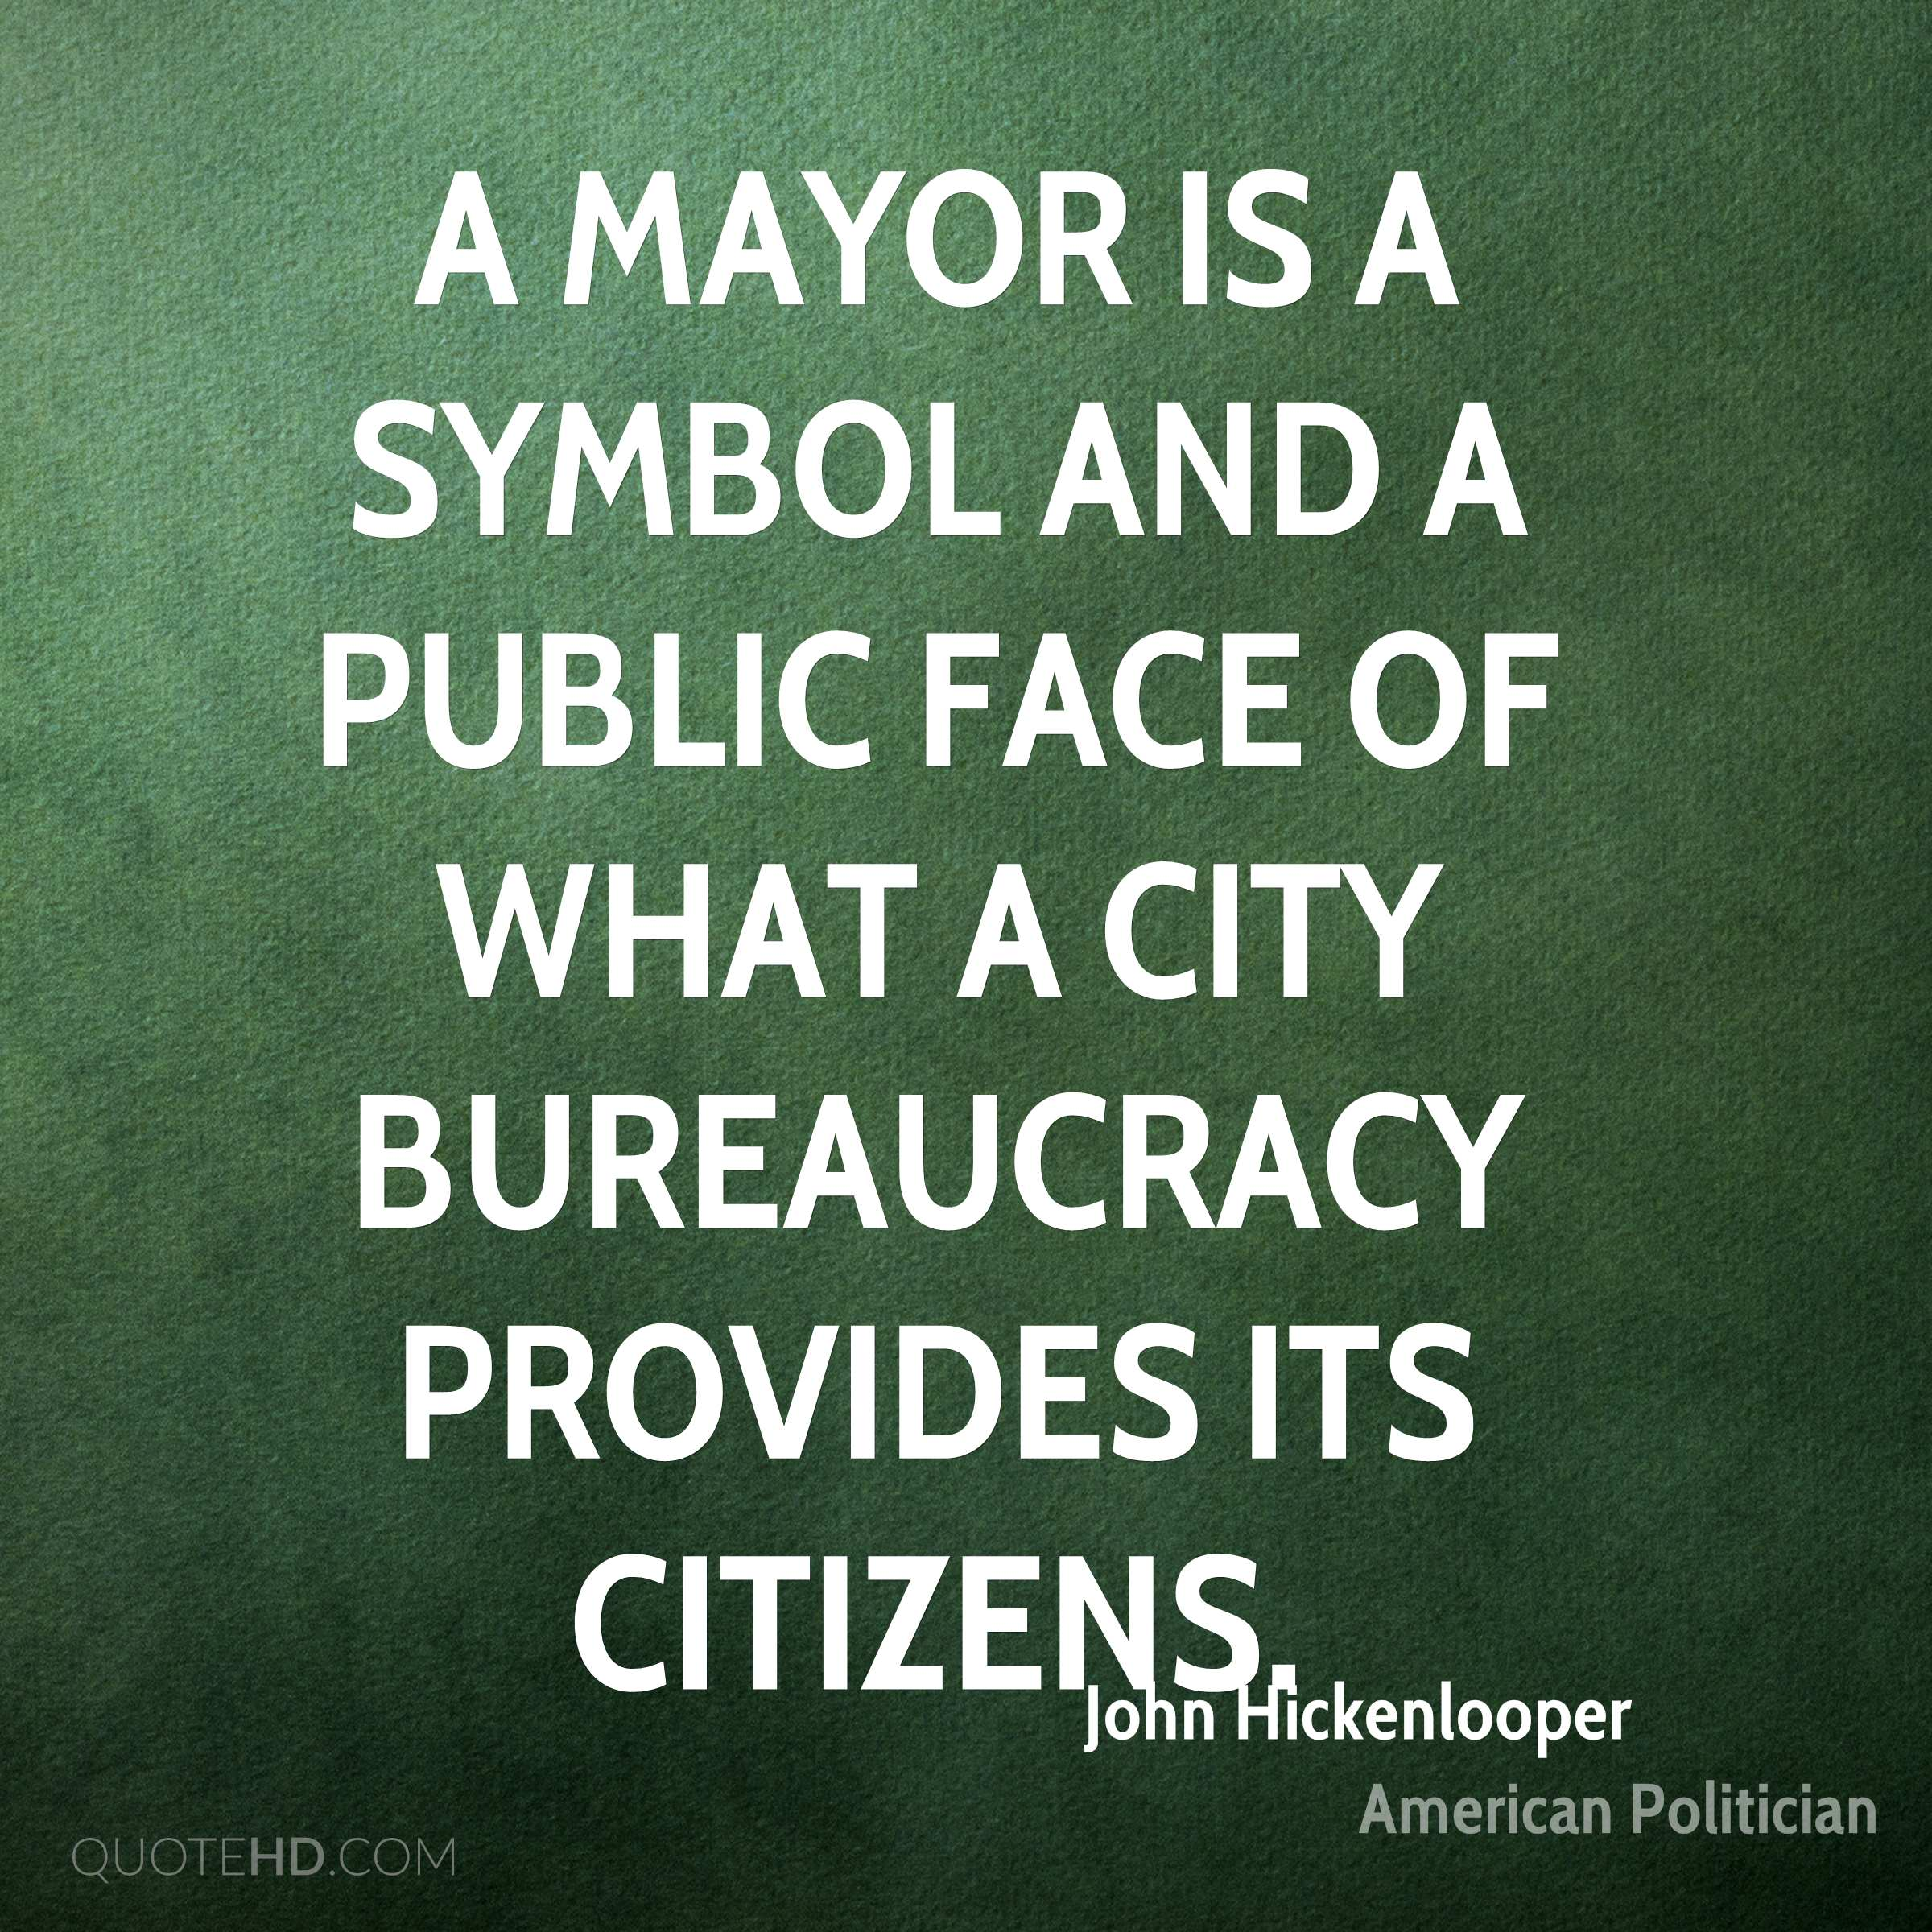 A mayor is a symbol and a public face of what a city bureaucracy provides its citizens.